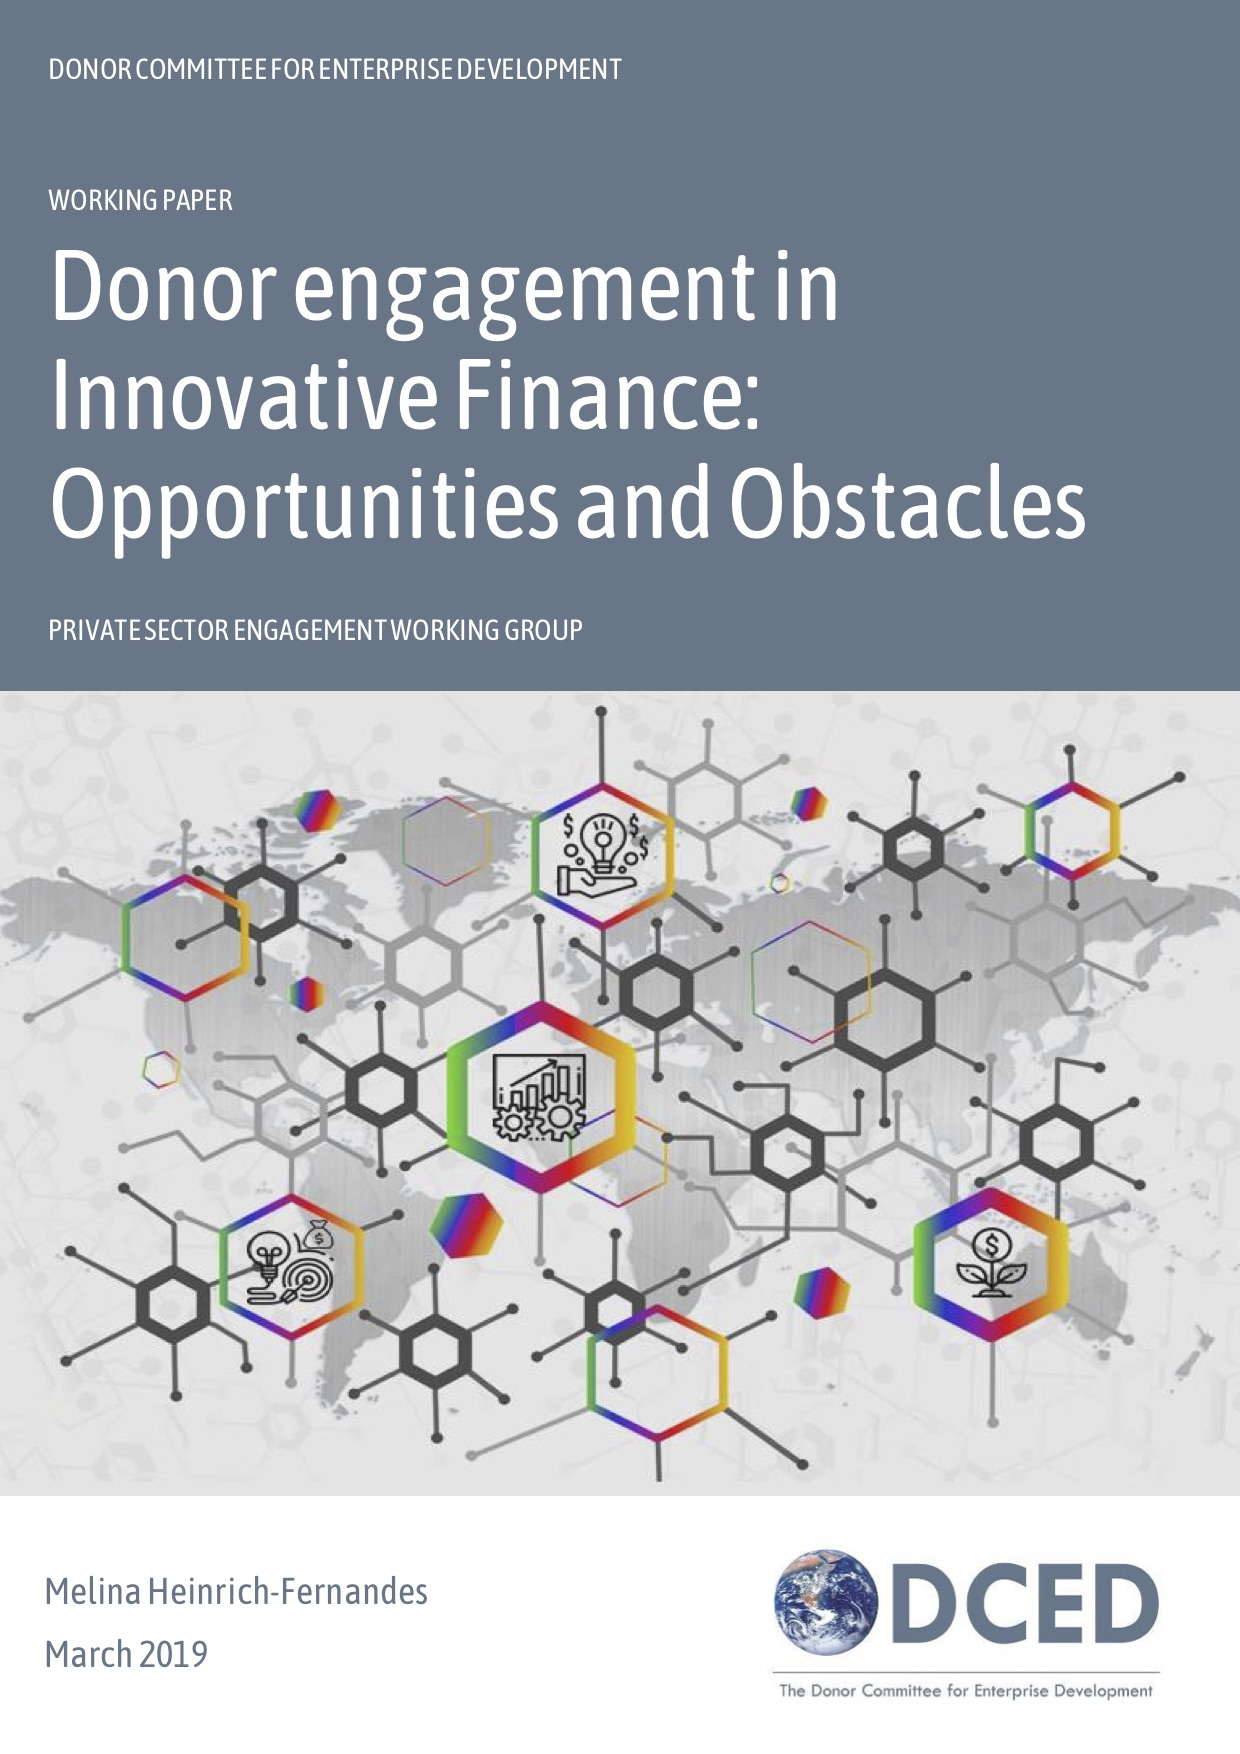 Donor engagement in Innovative Finance: Opportunities and Obstacles